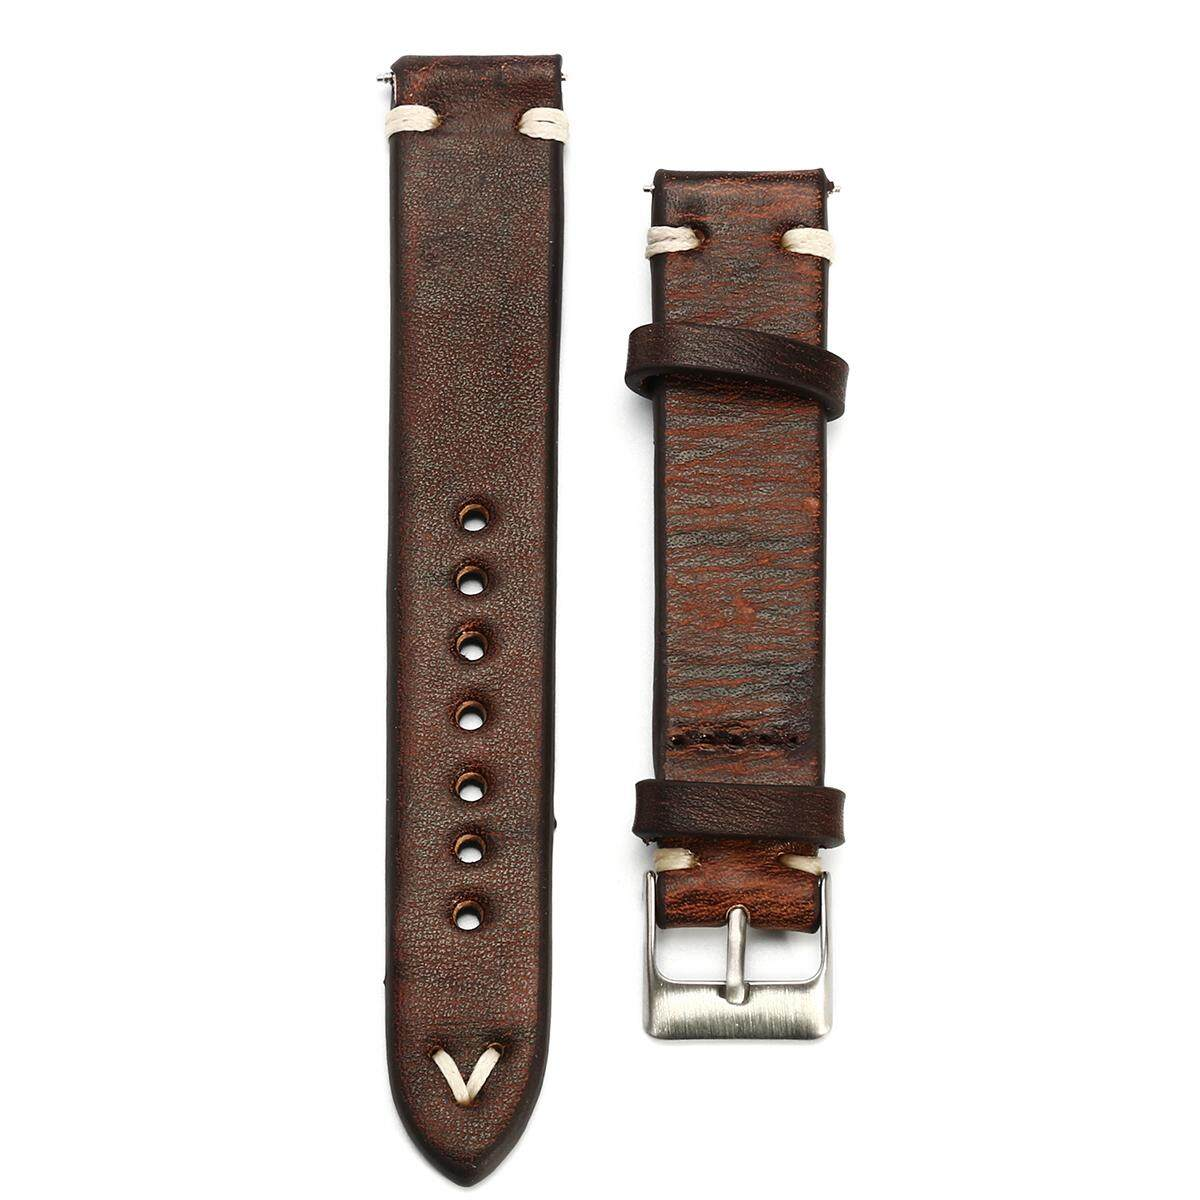 Straps Vintage Style Distressed Leather Wome/Men Watch Band Strap with Stitching [ 22mm ] Malaysia